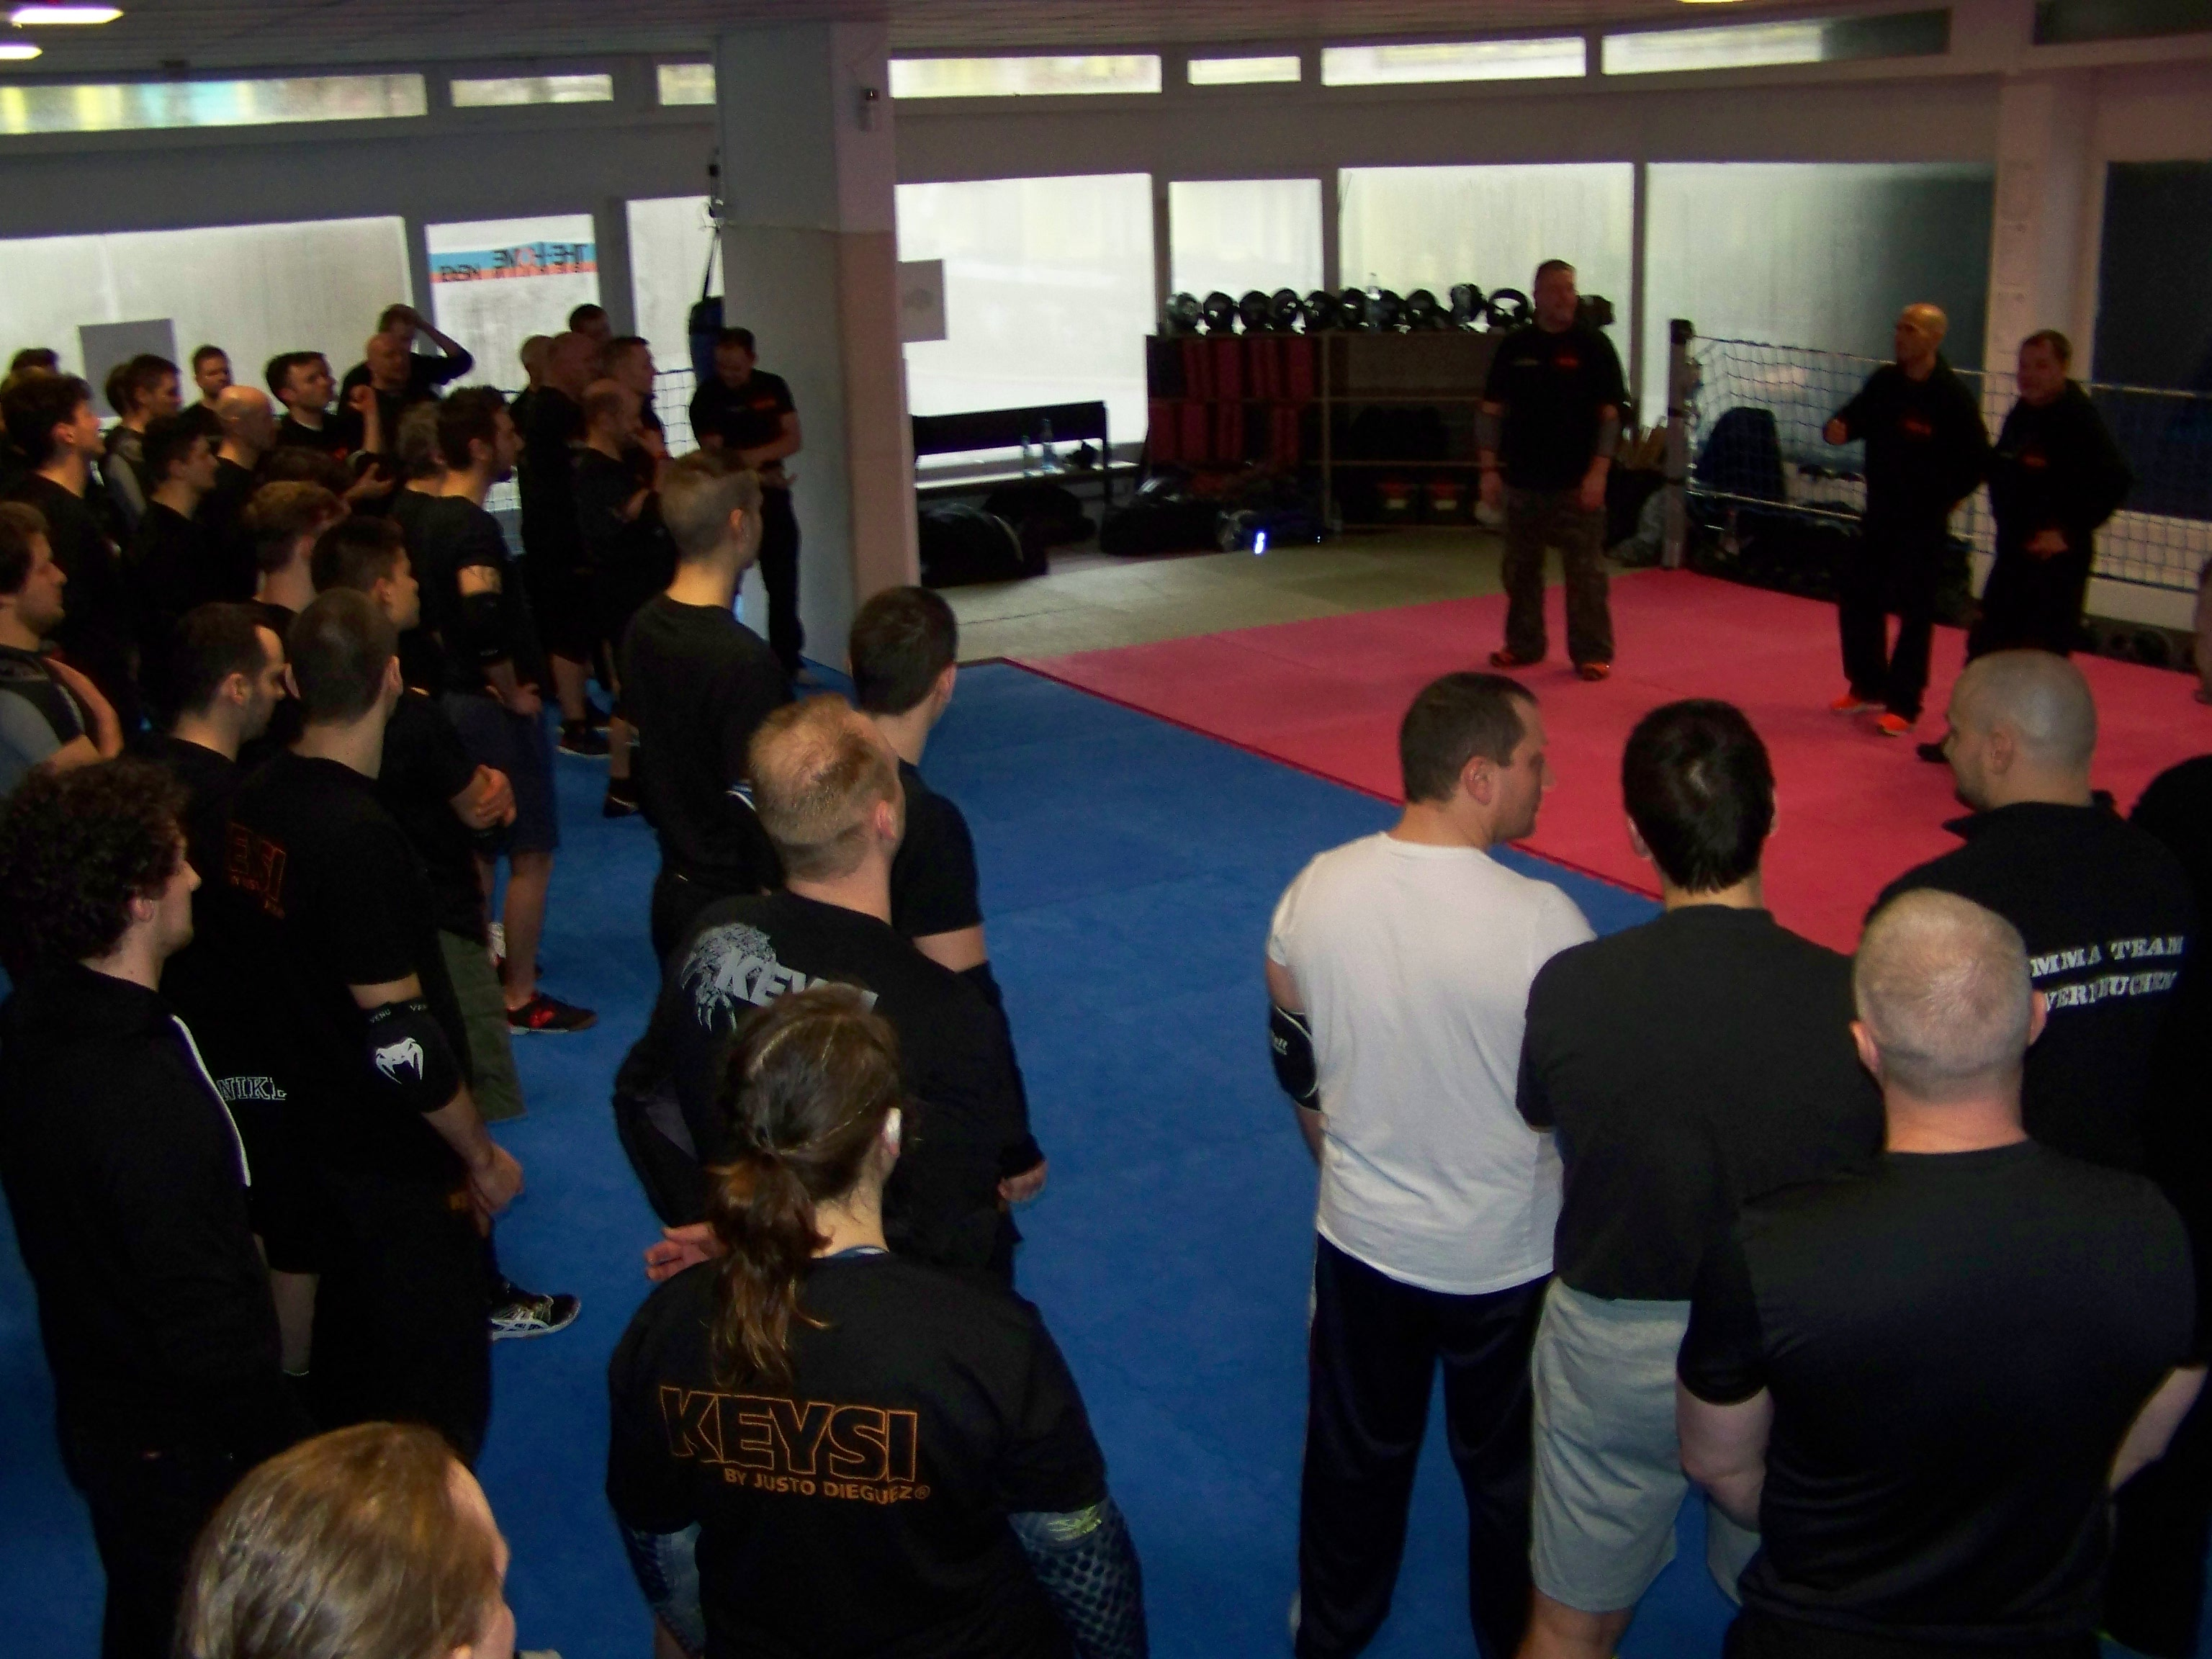 Keysi by Justo Dieguez open seminar am 12.03.2016 - THE-HOME.BERLIN